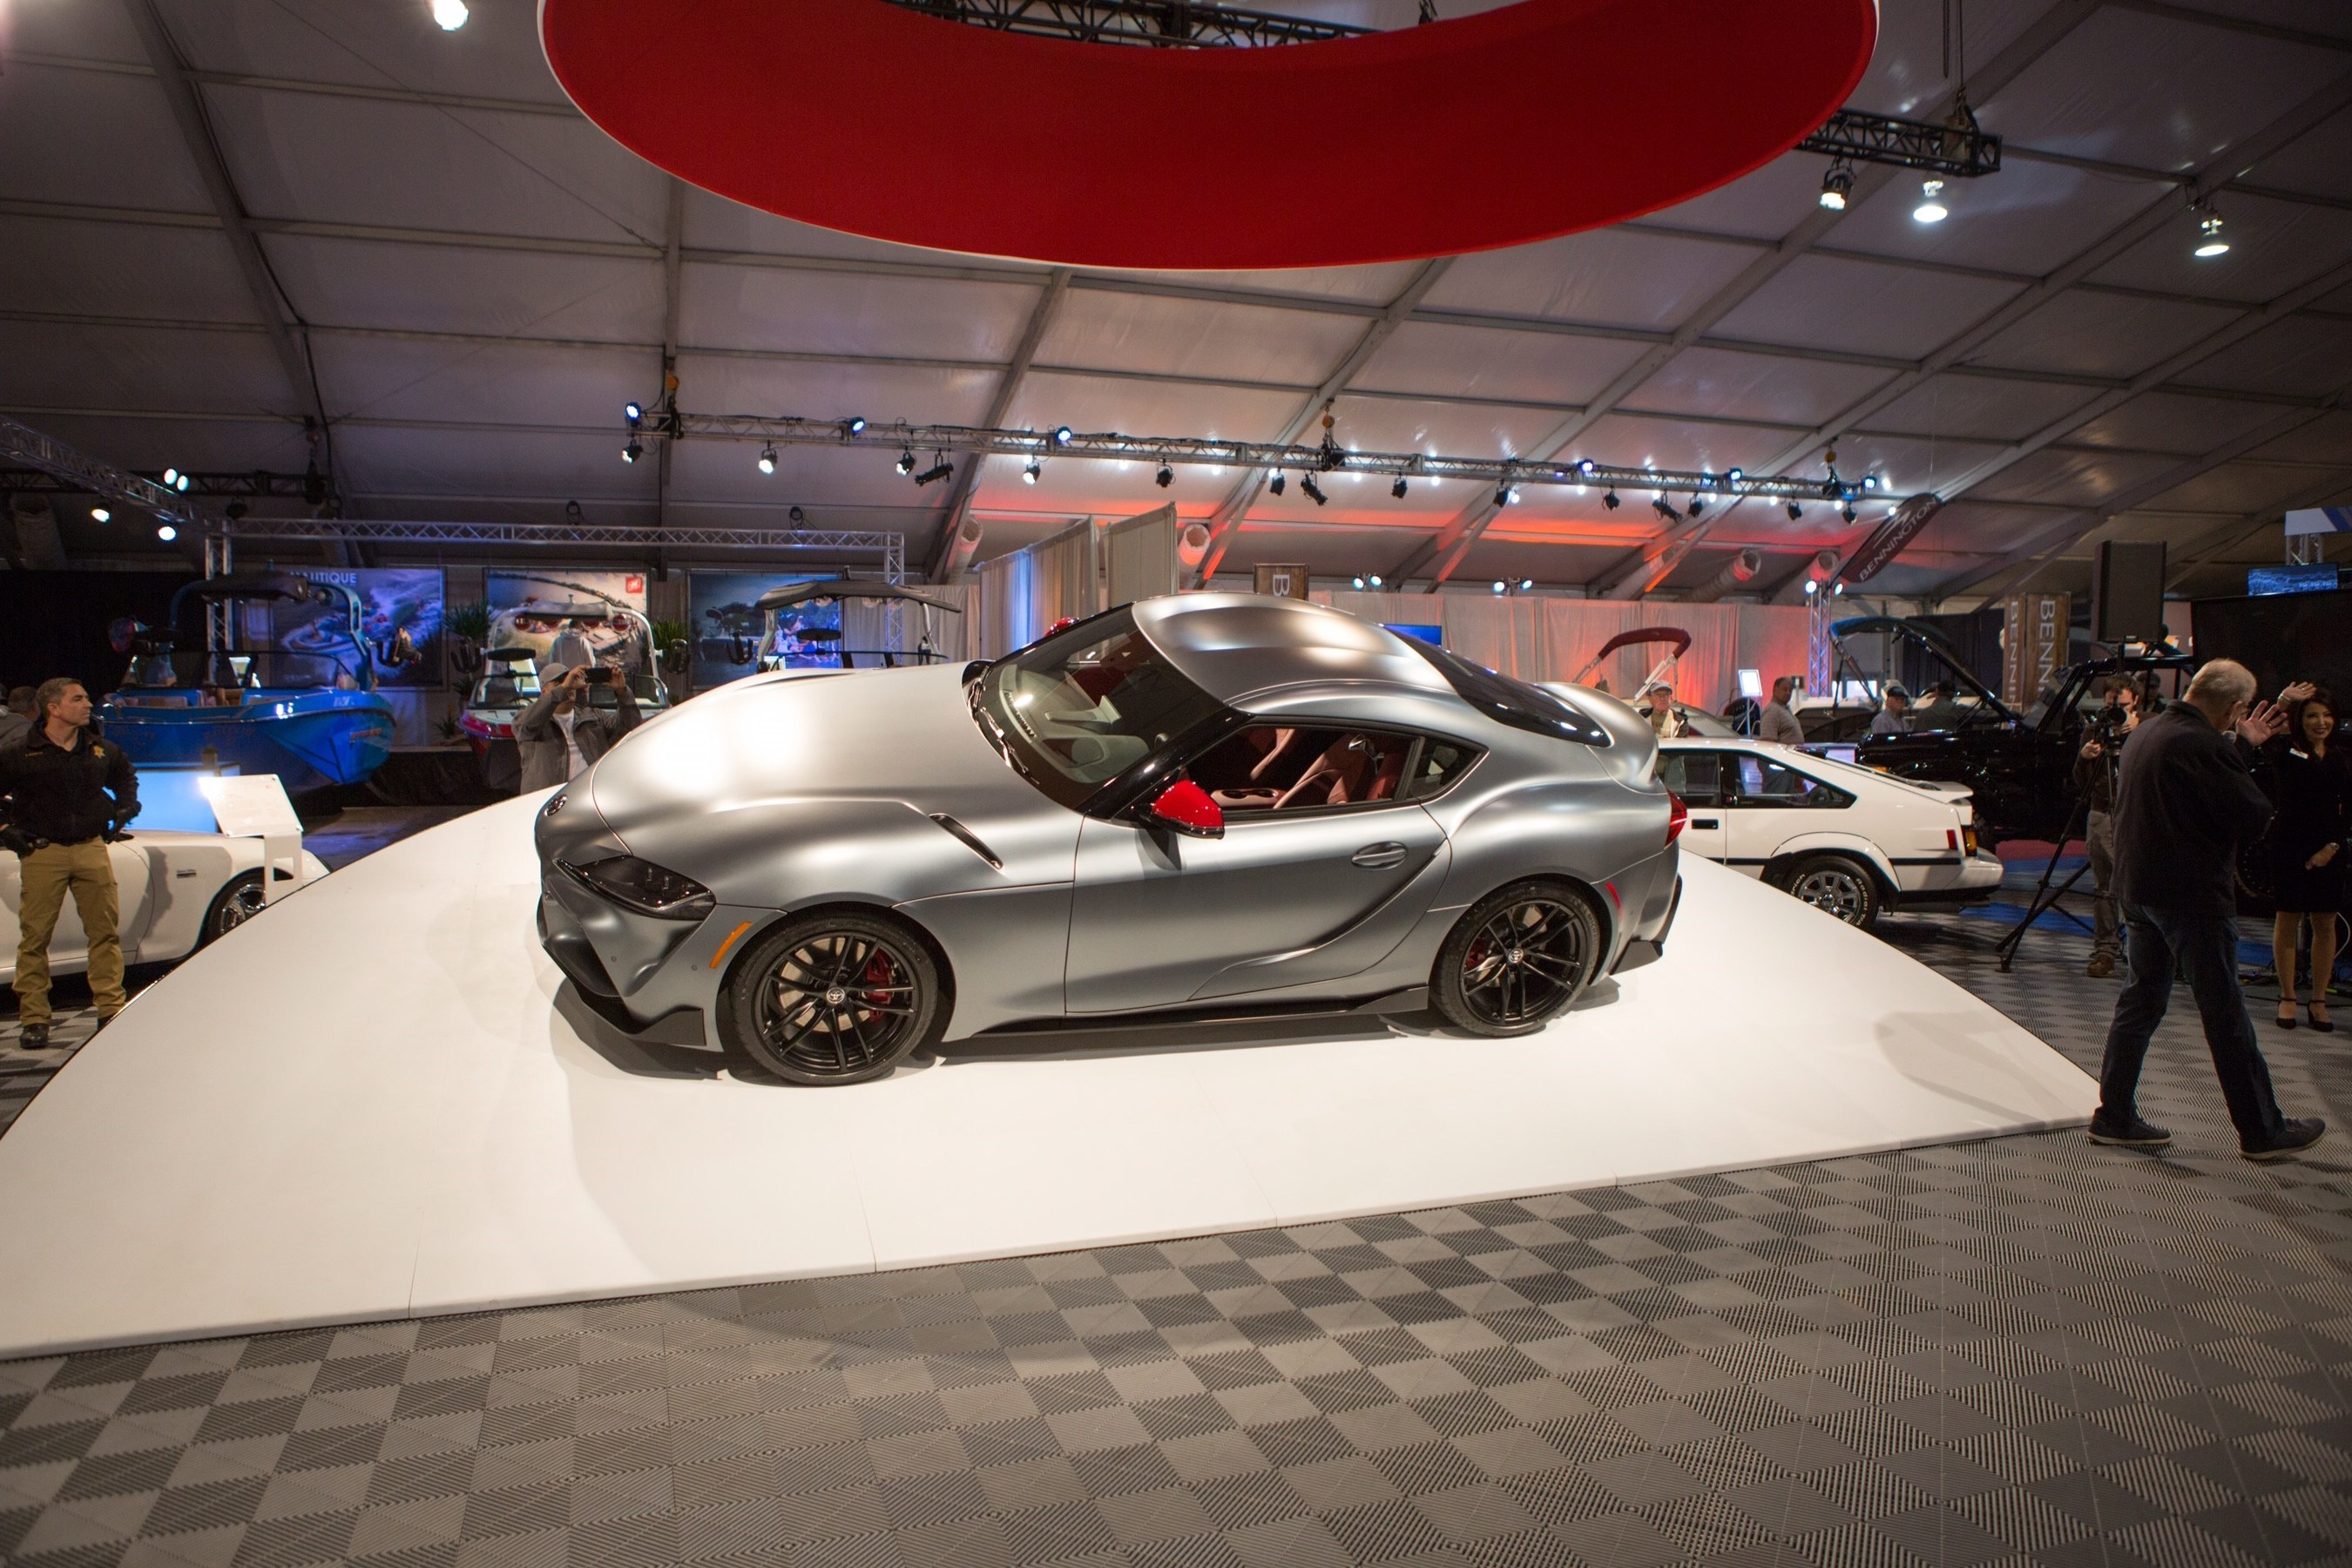 The First Production 2020 Toyota Gr Supra To Roll Off Embly Line Was Auctioned For Charity It S A Ing Start Launch Of